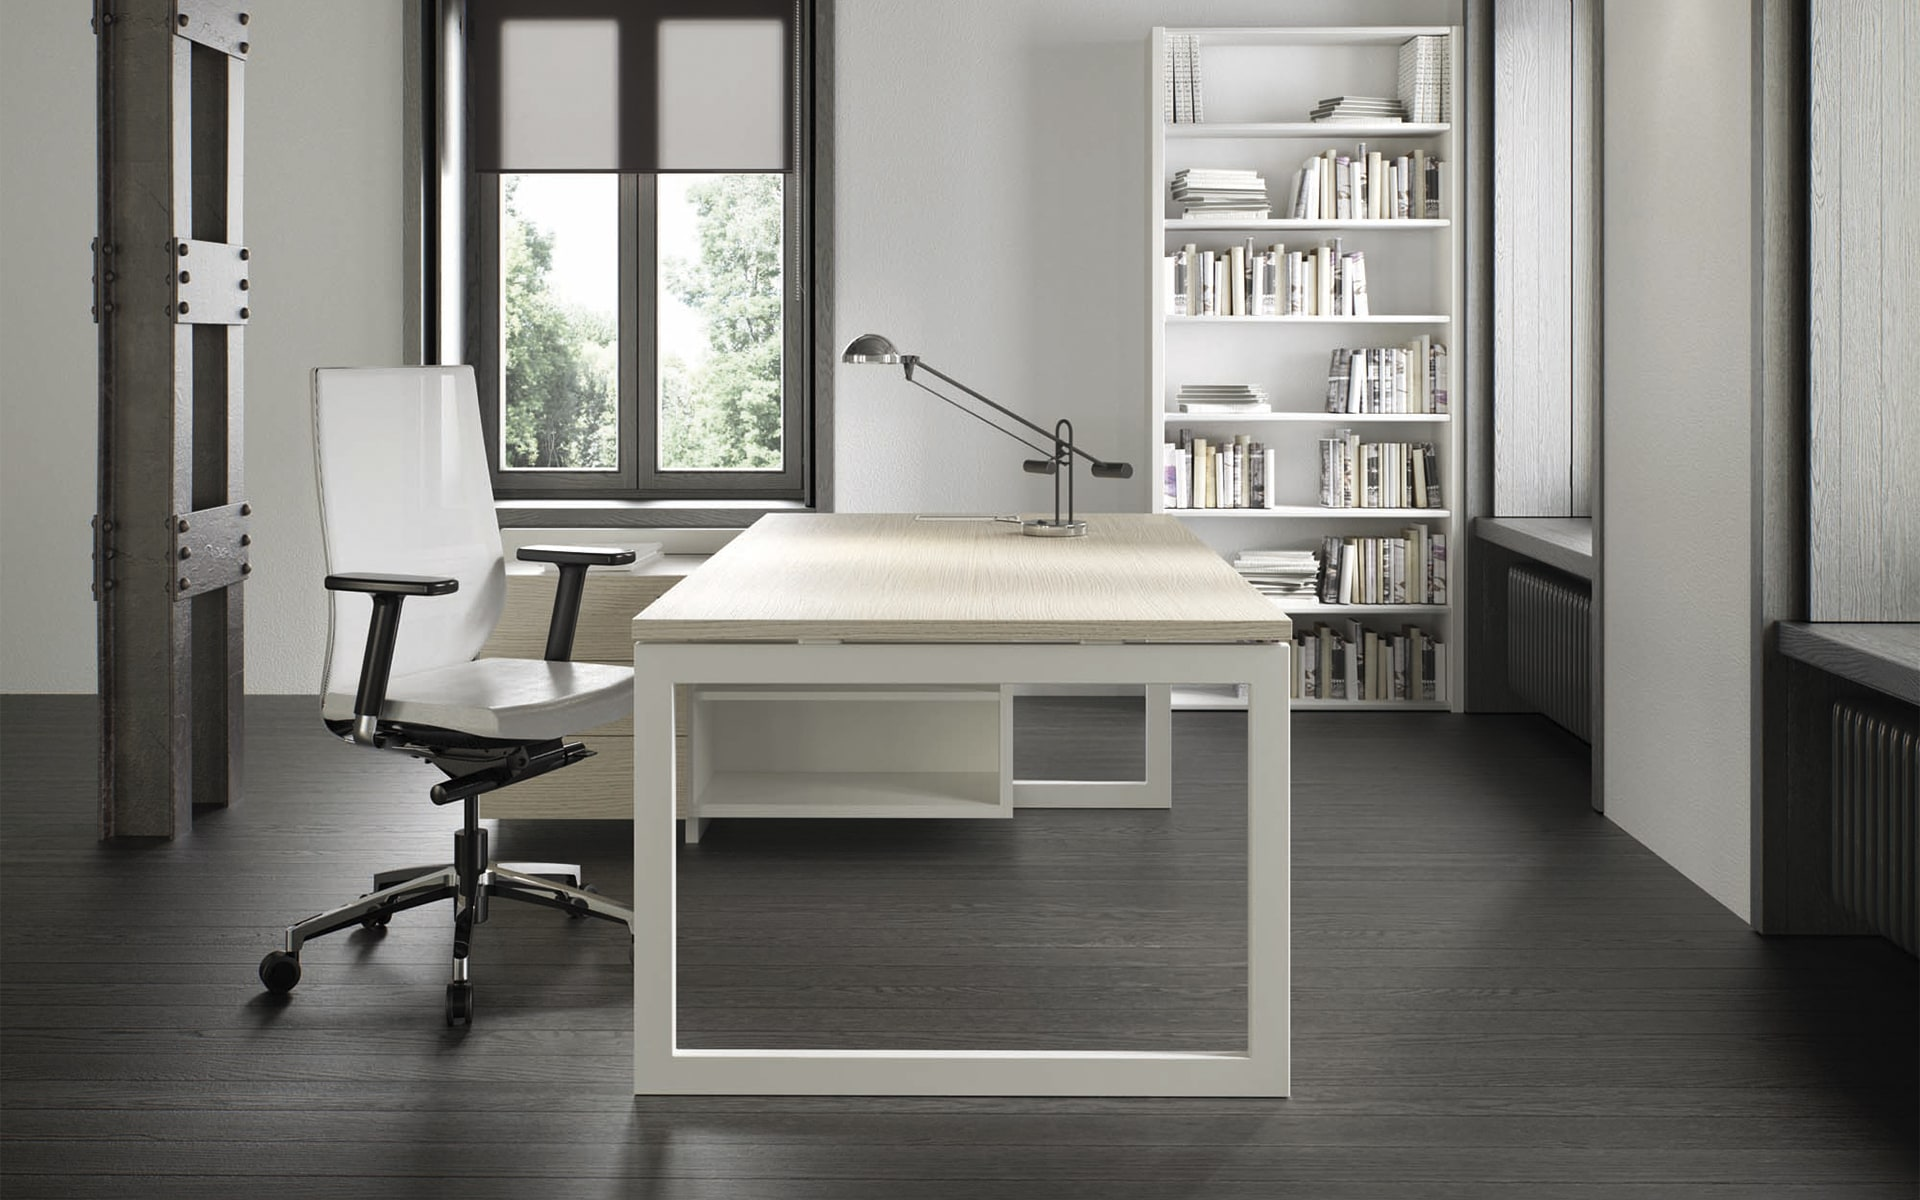 White Forma 5 Eben office chair by ITO Design in monochrome office